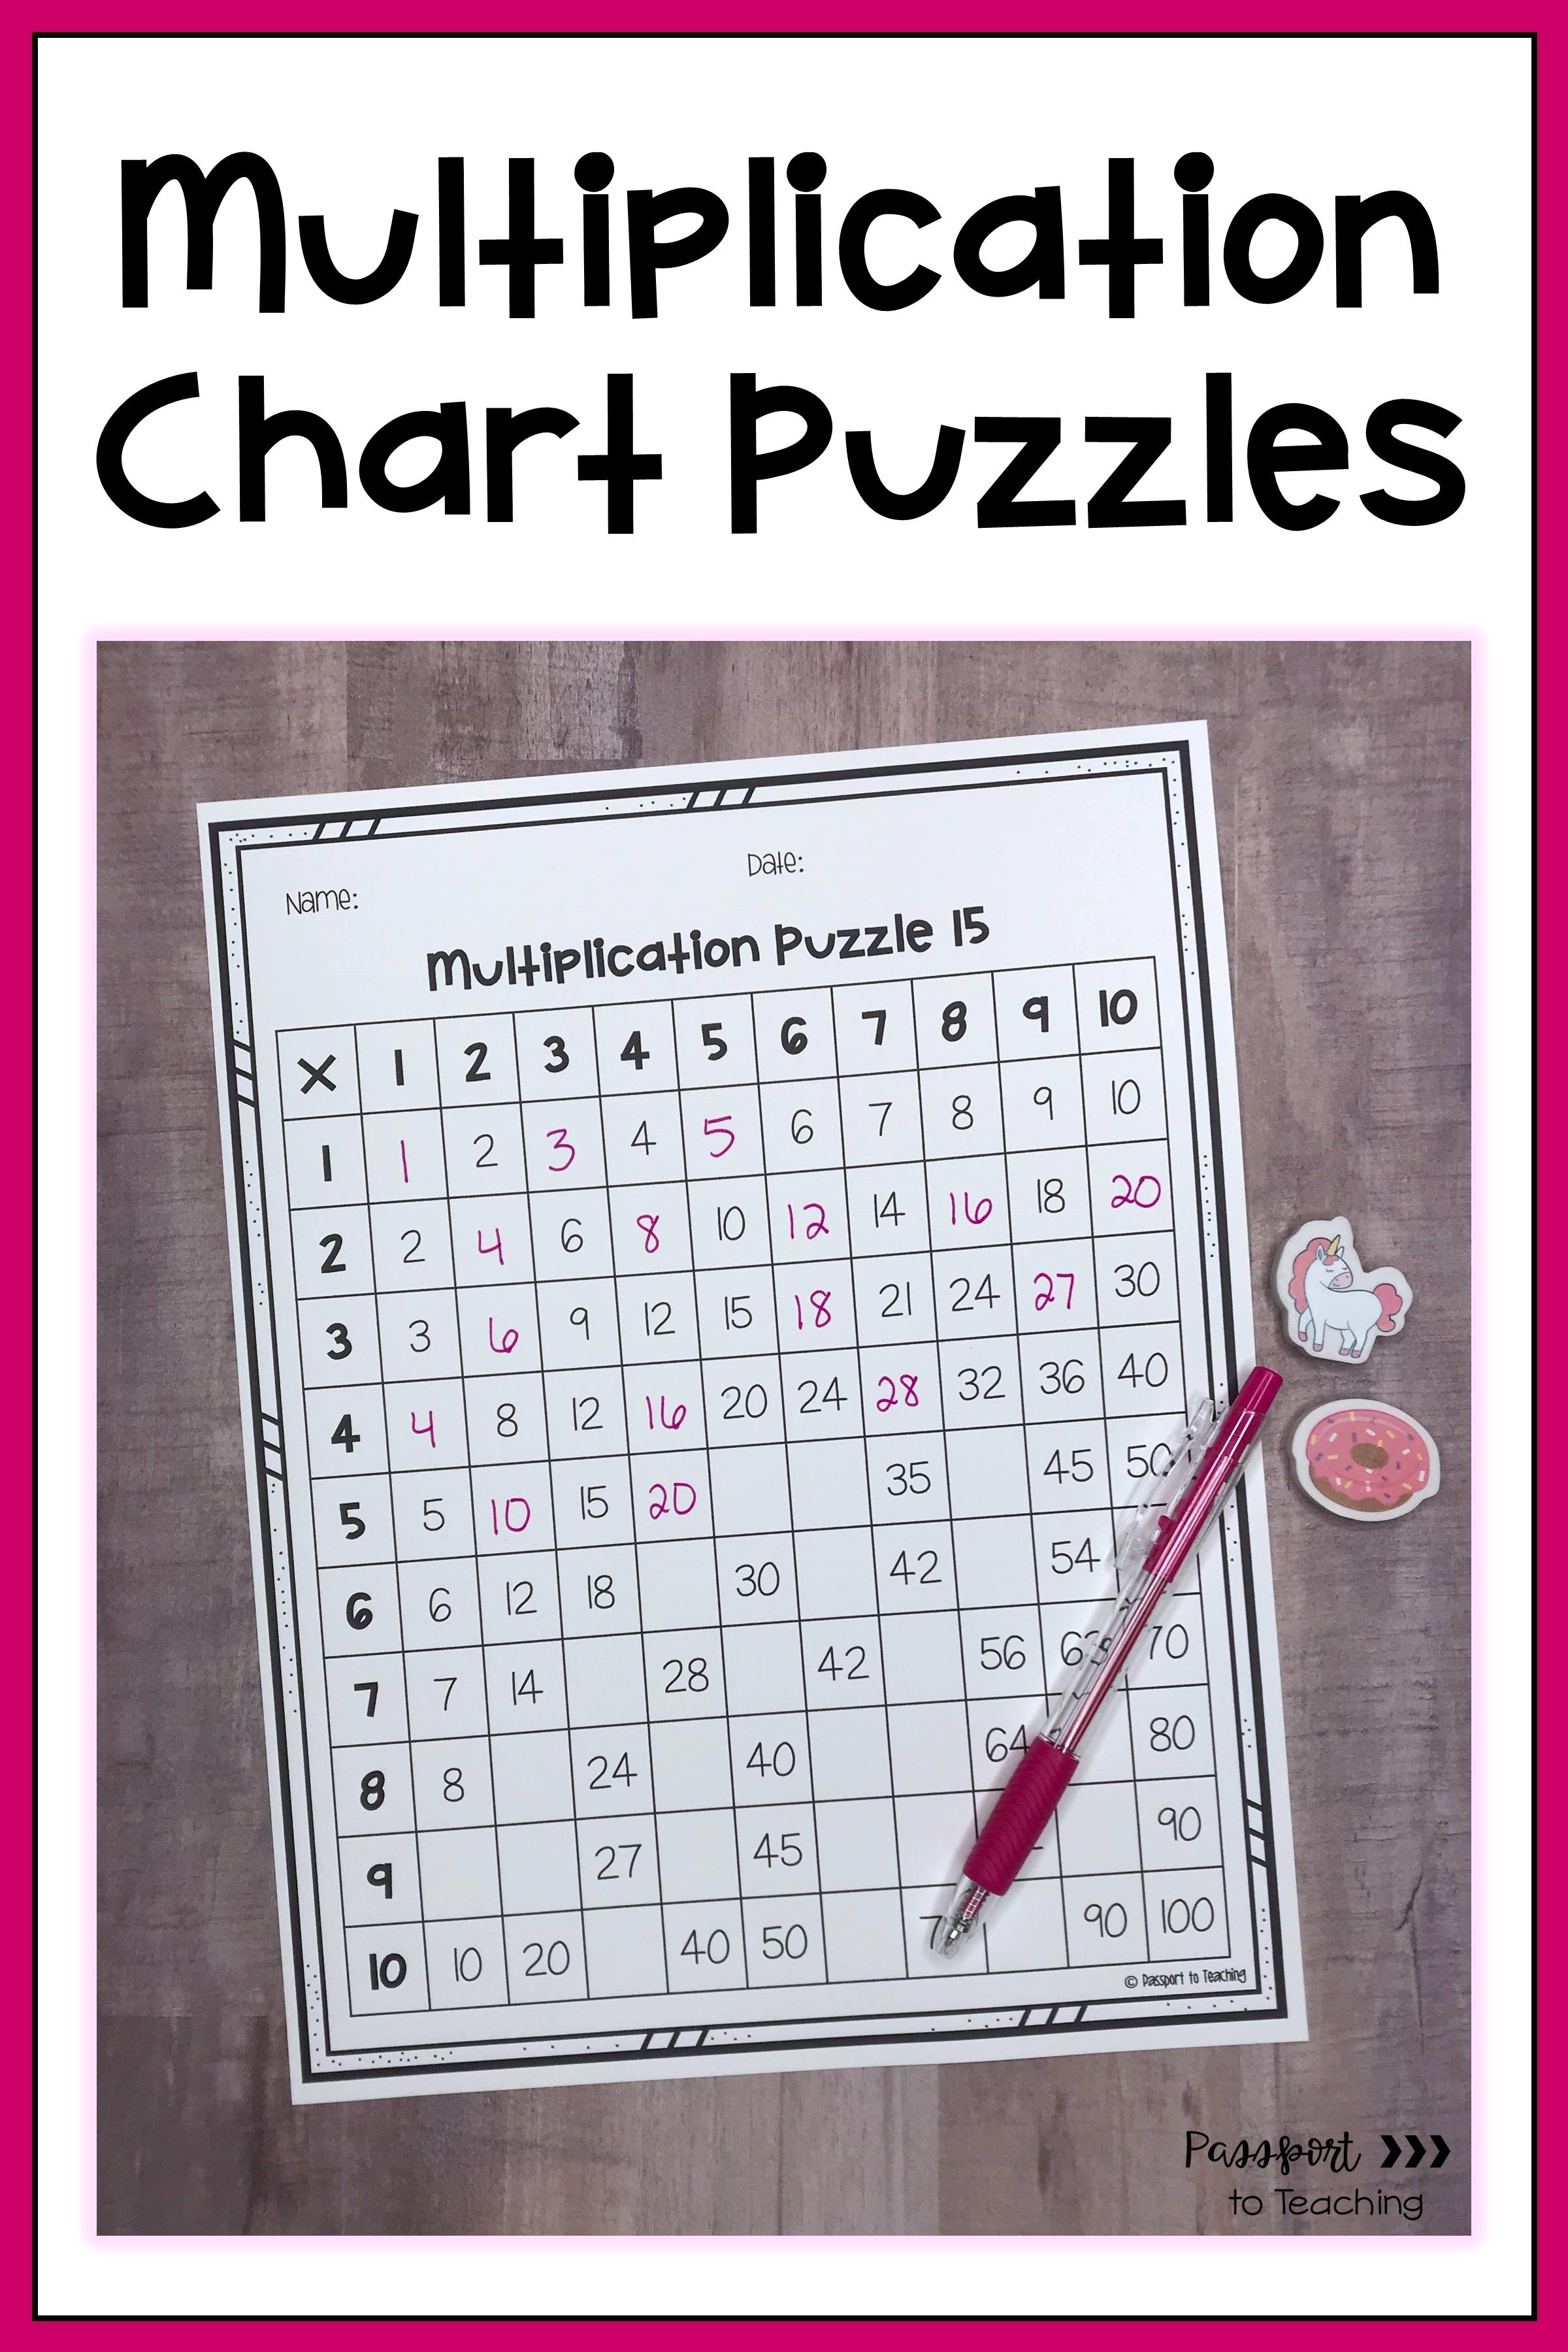 Multiplication Chart Puzzles